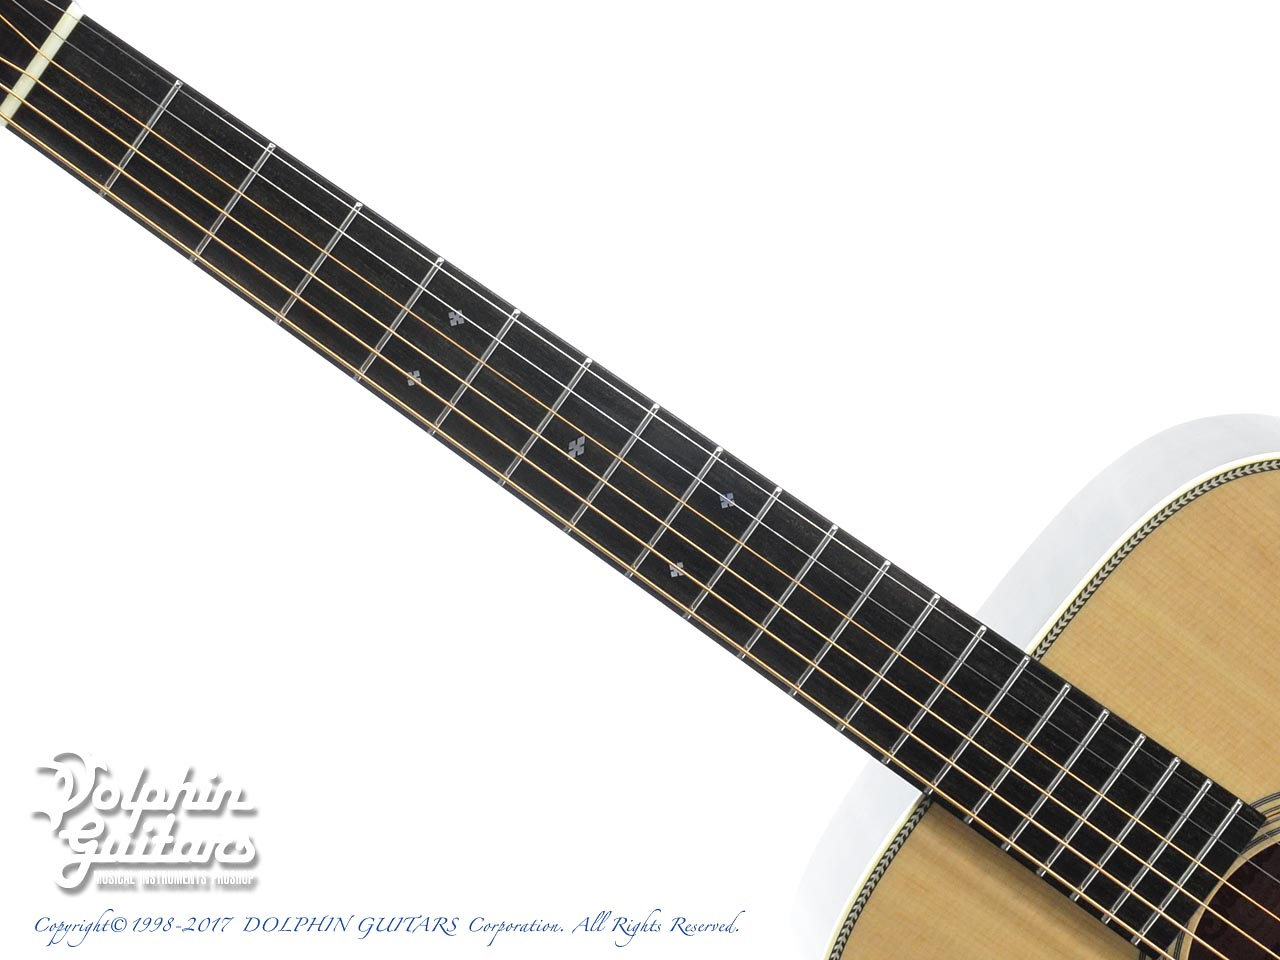 SWITCH: SCOM-2H (Sitka Spruce & Indian Rosewood) (6)